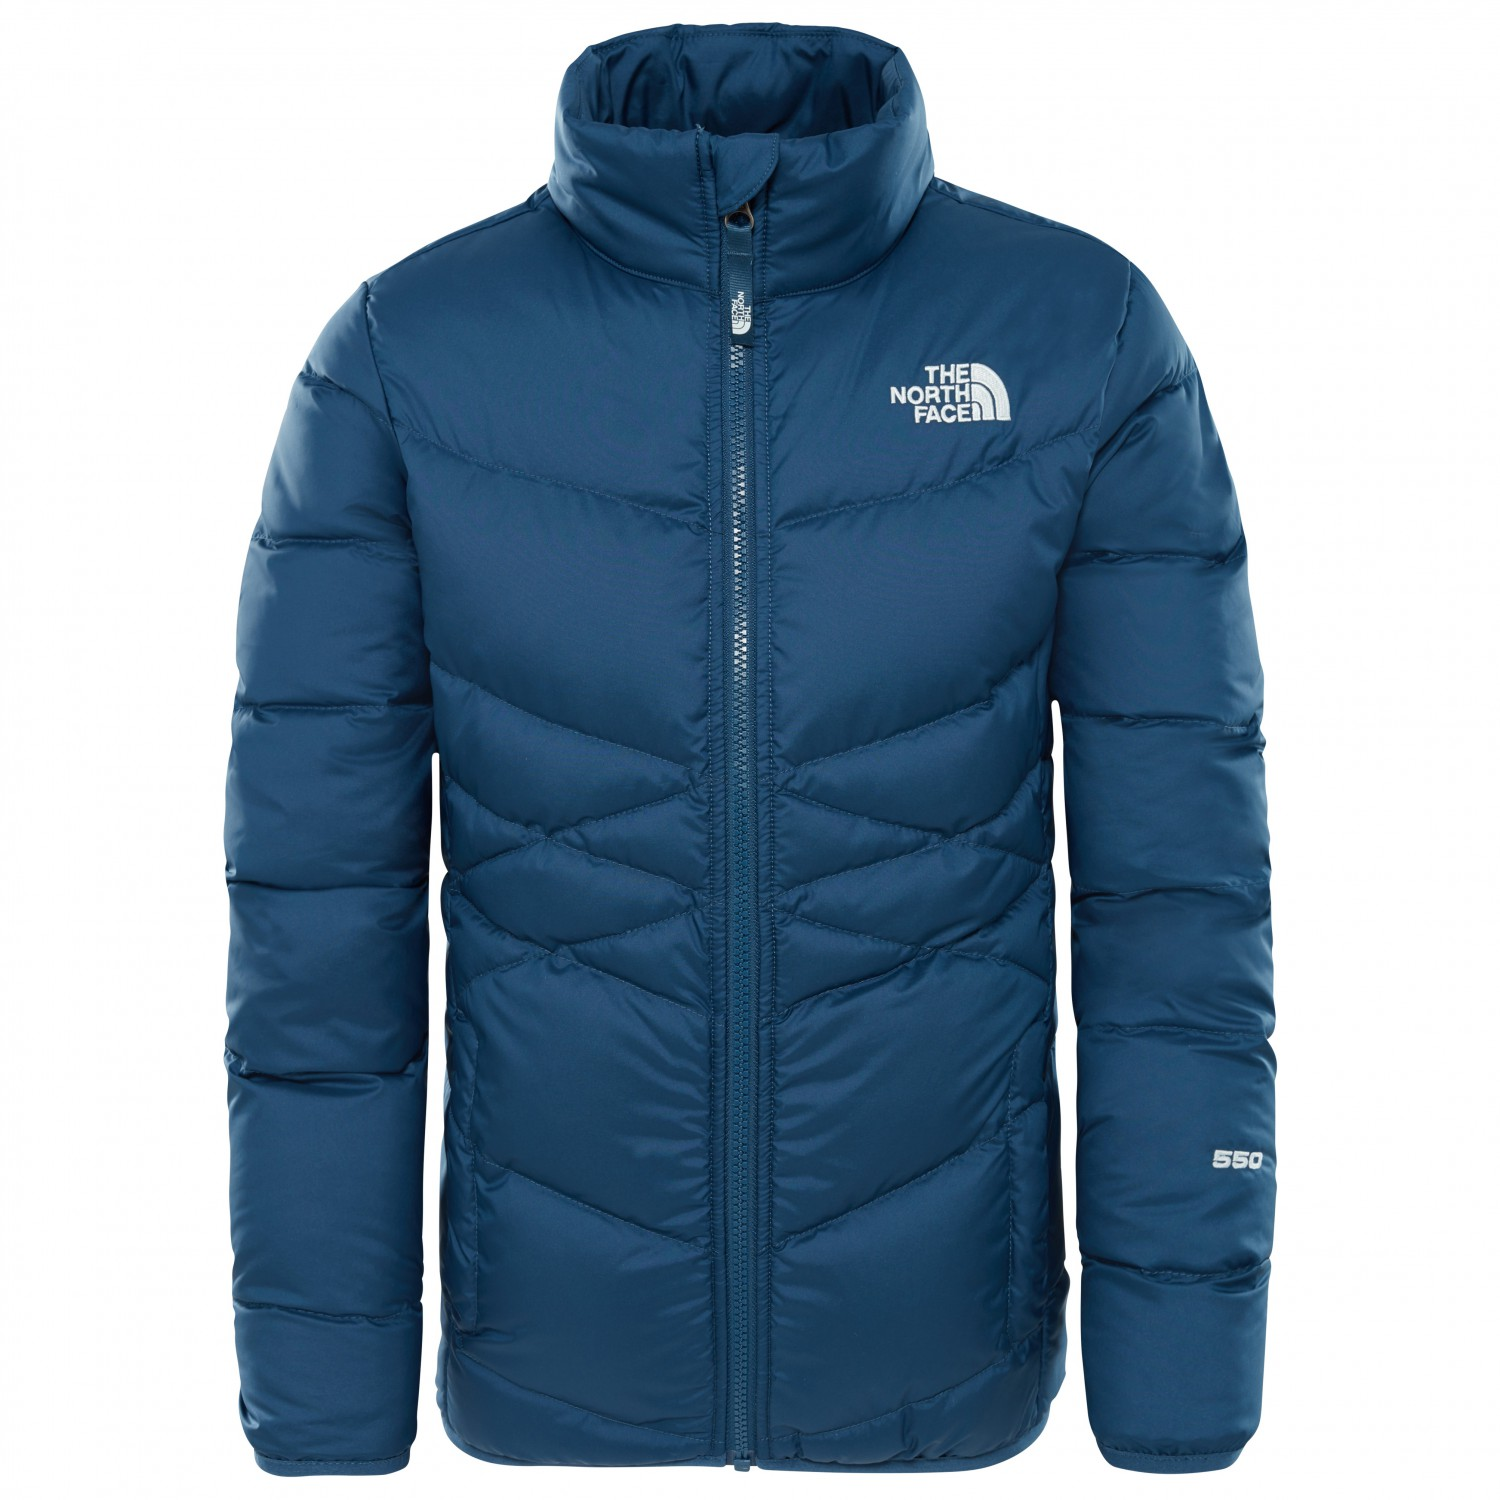 The North Face Andes Down Jacket Girls' |